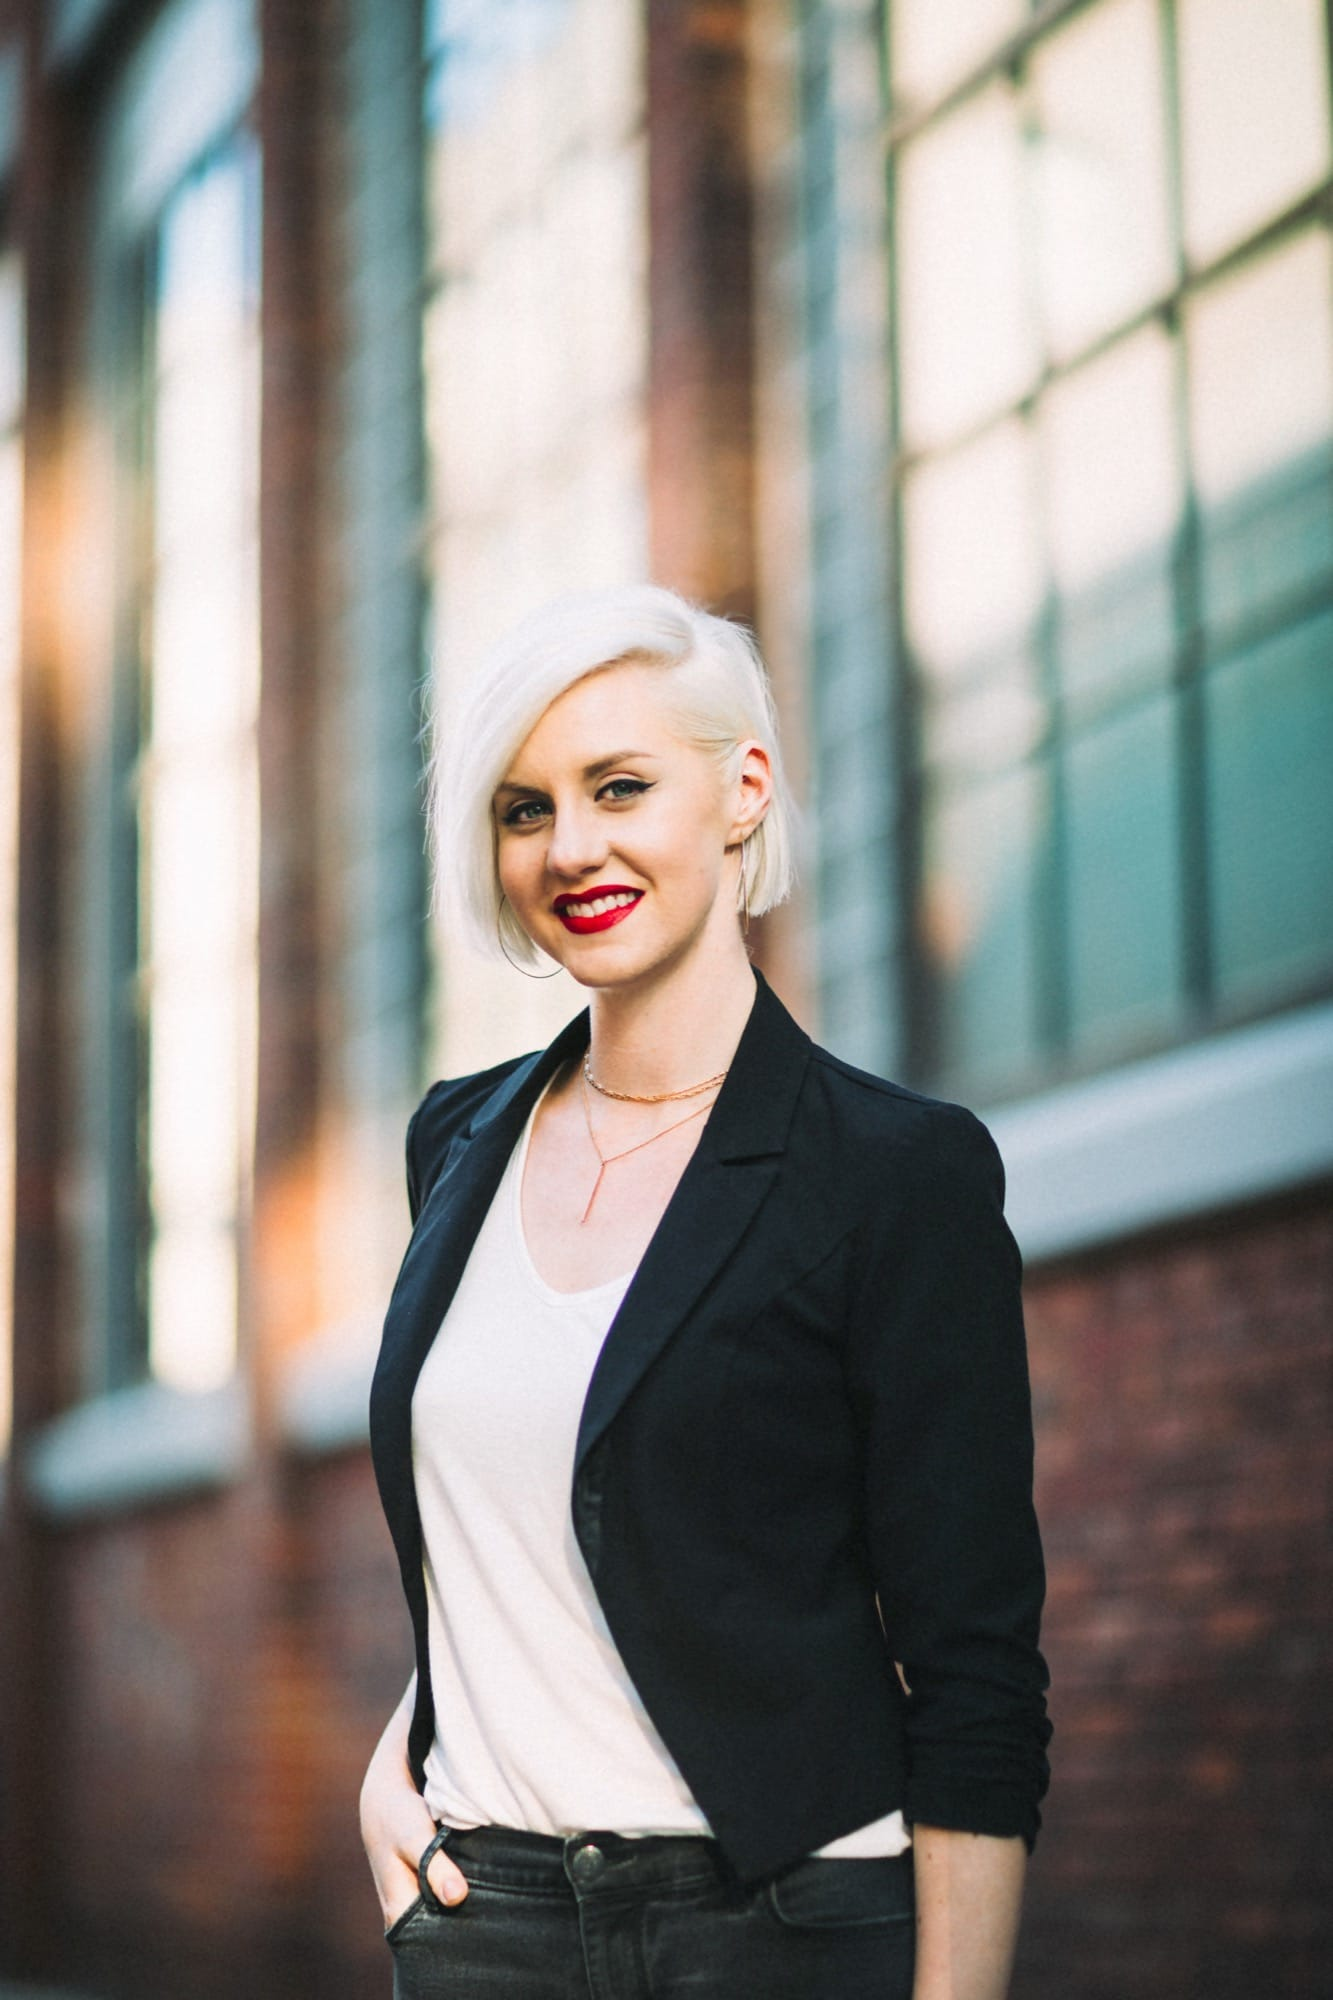 Co-Author of Customer-Led Growth, Claire Suellentrop